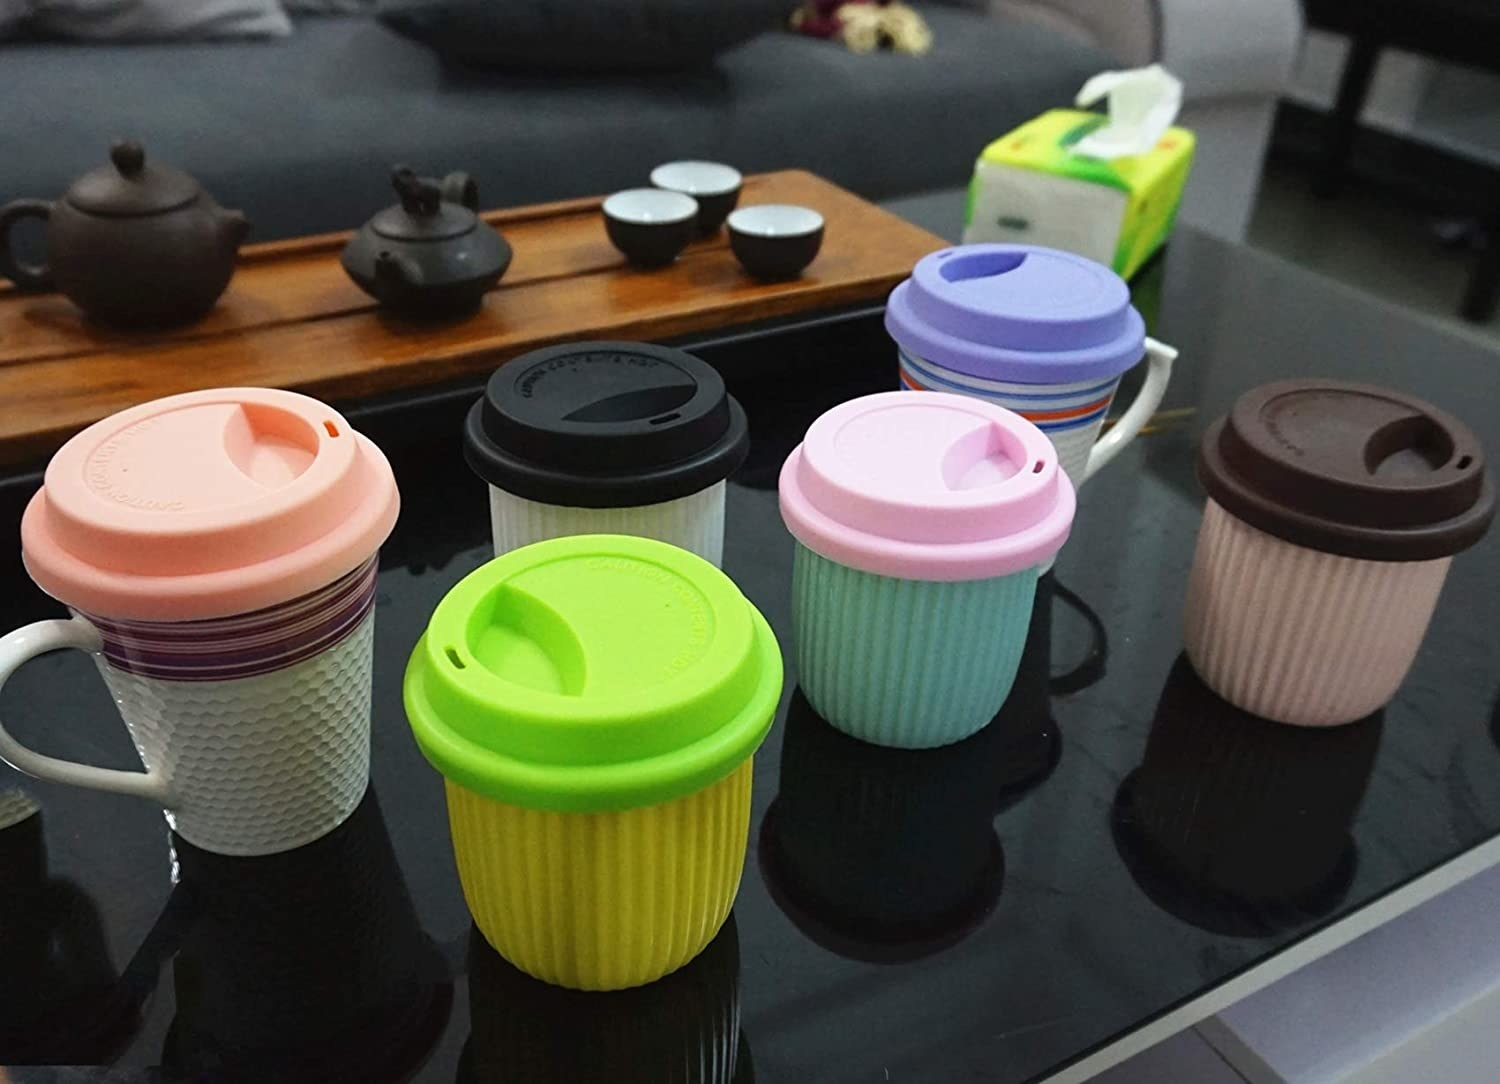 Silicone lids on several different mugs and cups